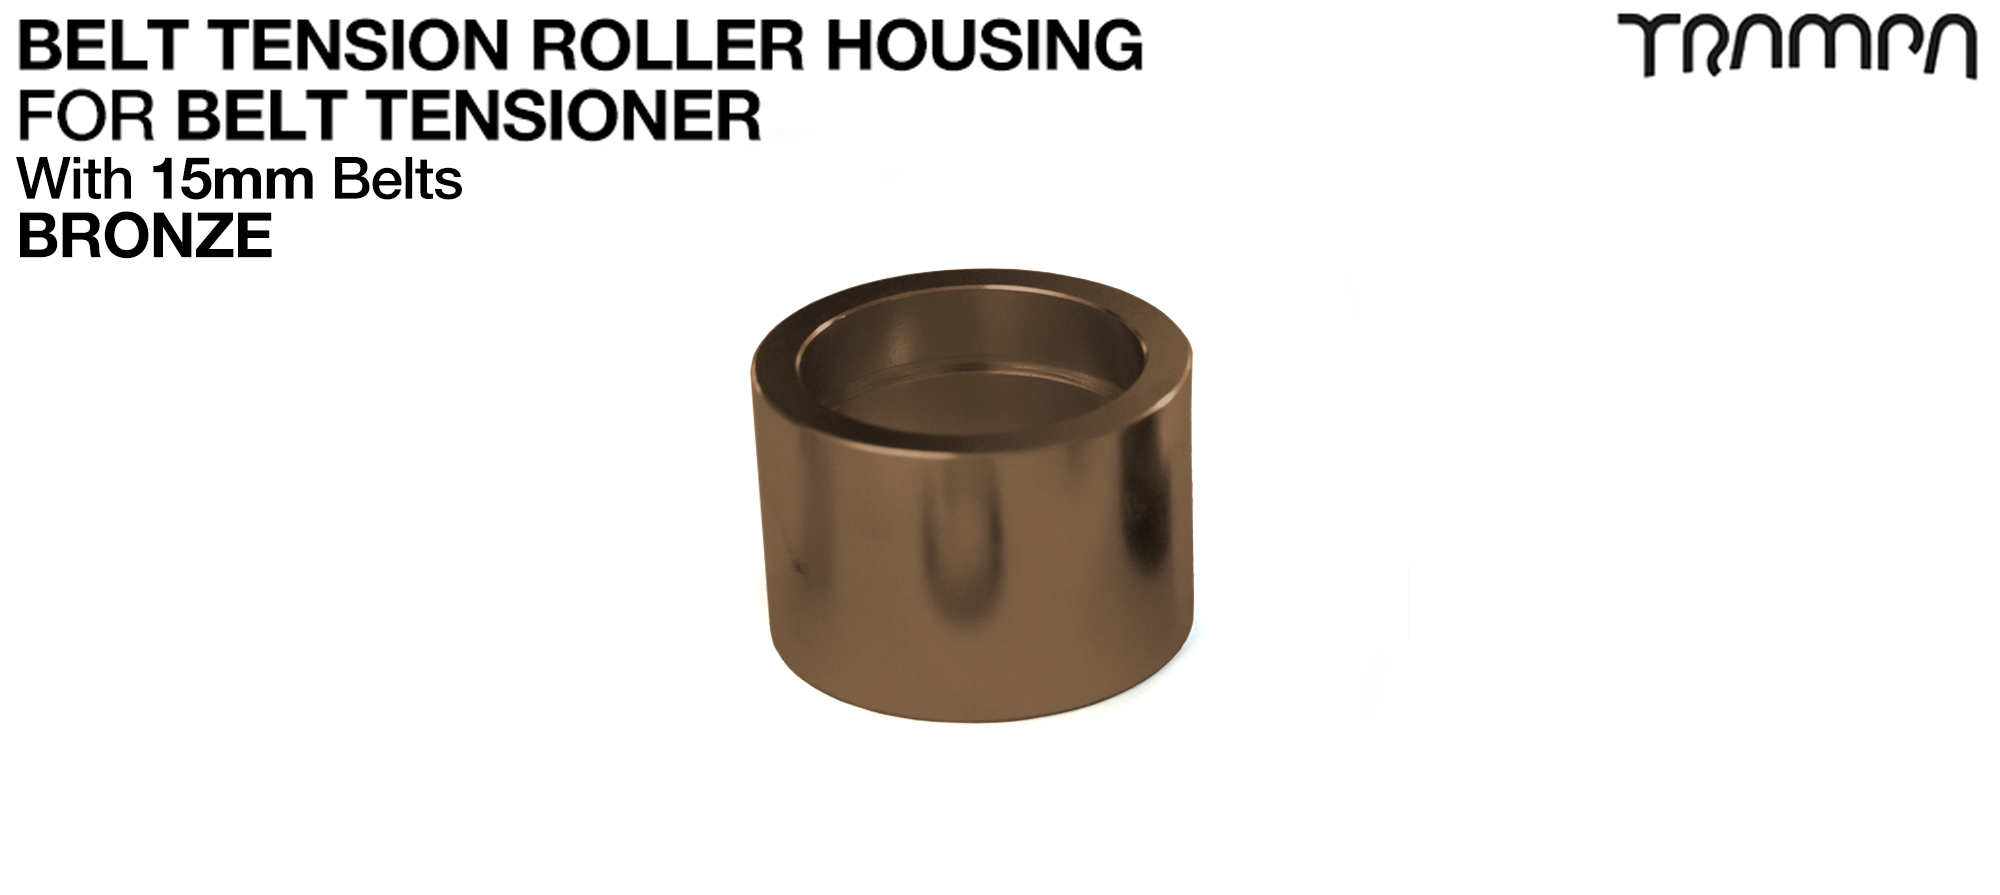 Belt Tension Roller Housing for 15mm Belts - BRONZE